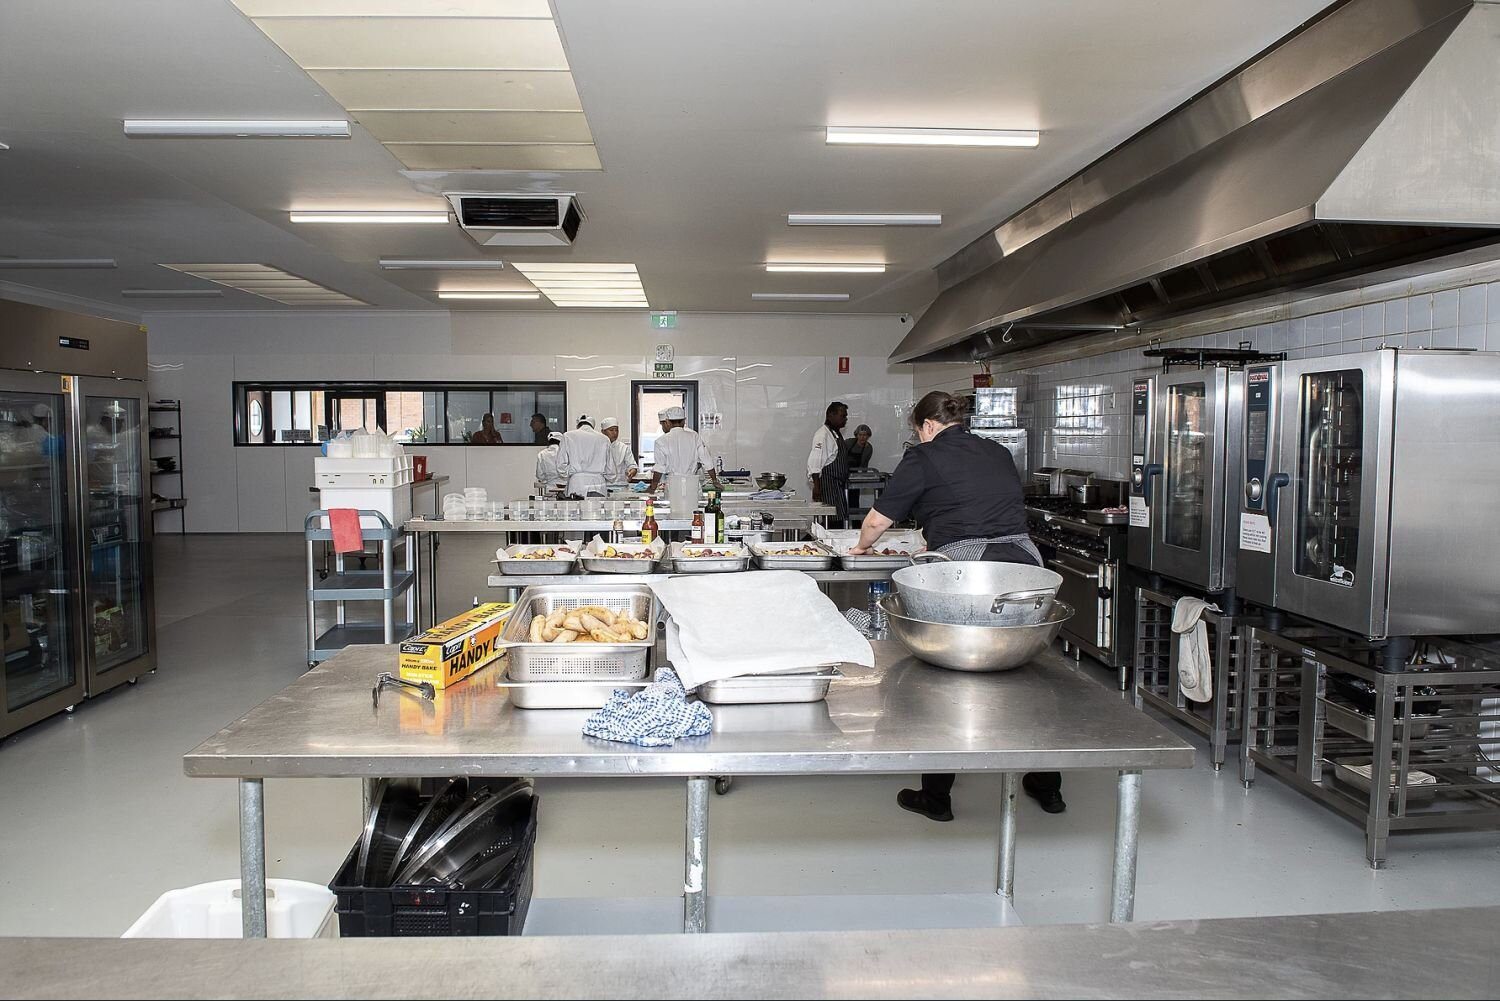 Commercial kitchen hire Perth 3.jpg